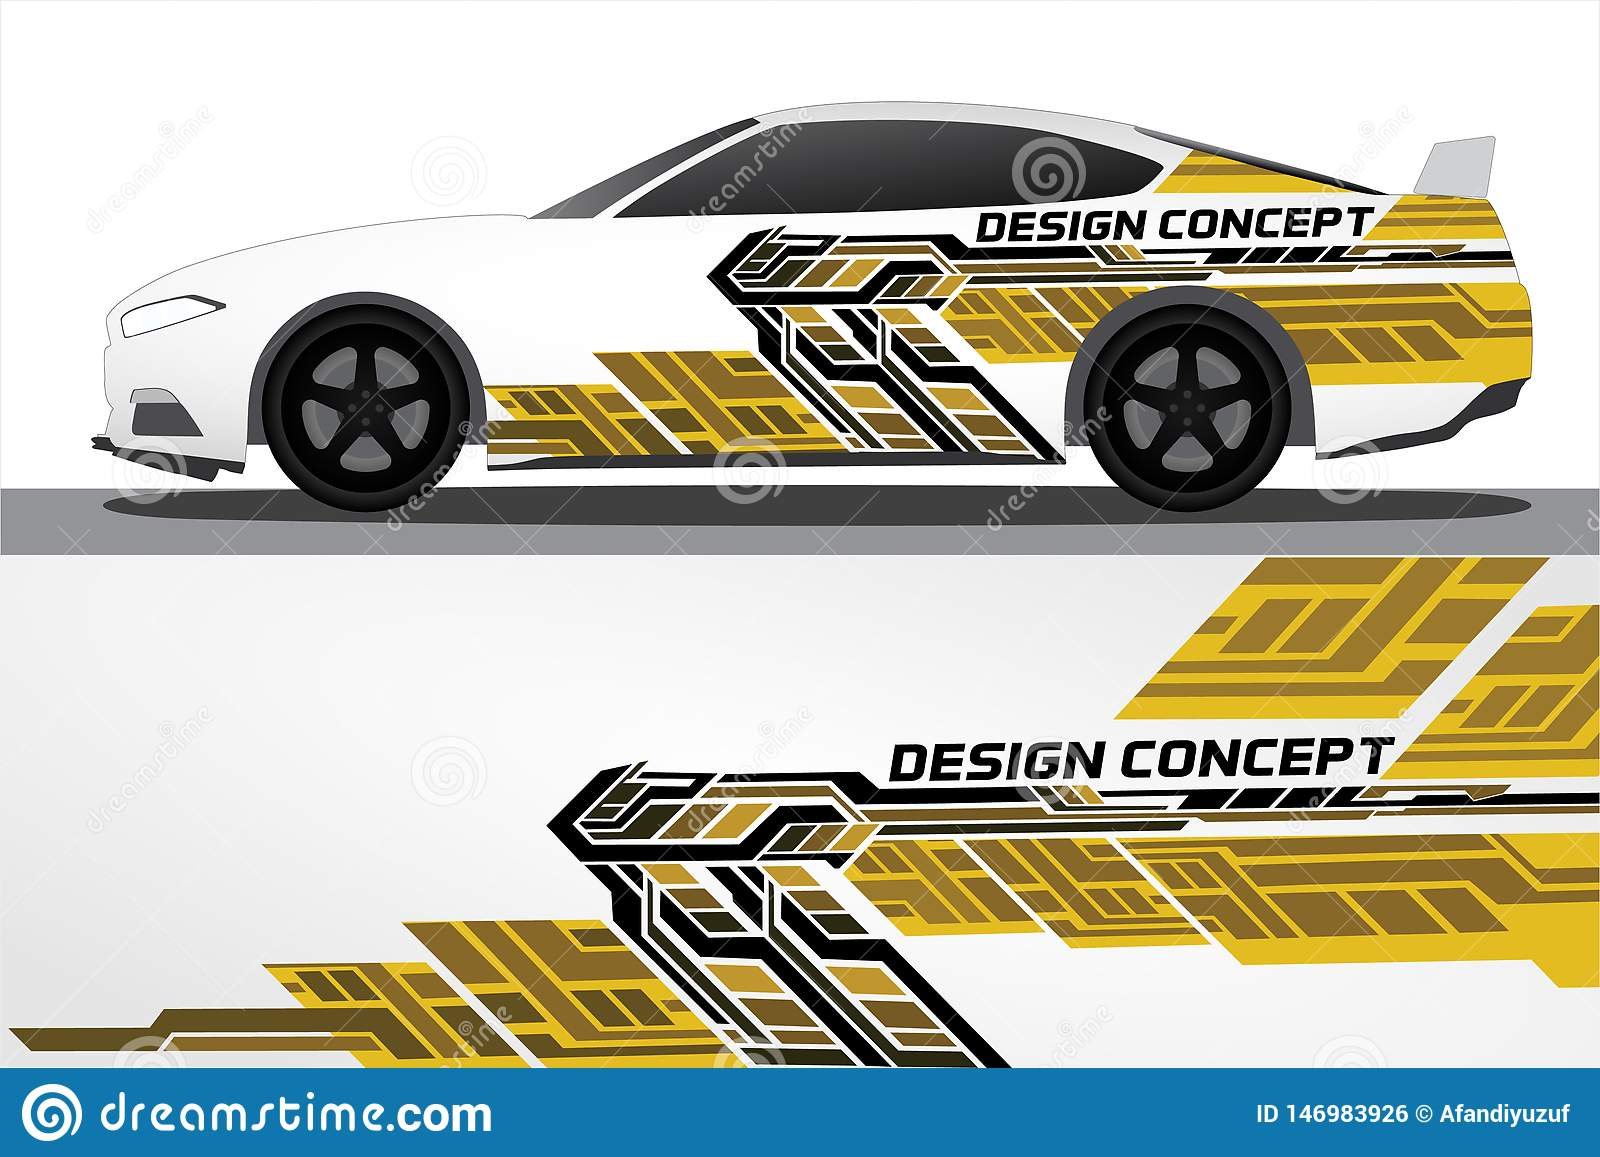 Vinyls Sticker Set Decals For Car Truck Mini Bus Modify Motorcycle Racing Vehicle Stock Vector Illustration Of Decorative Body 146983926